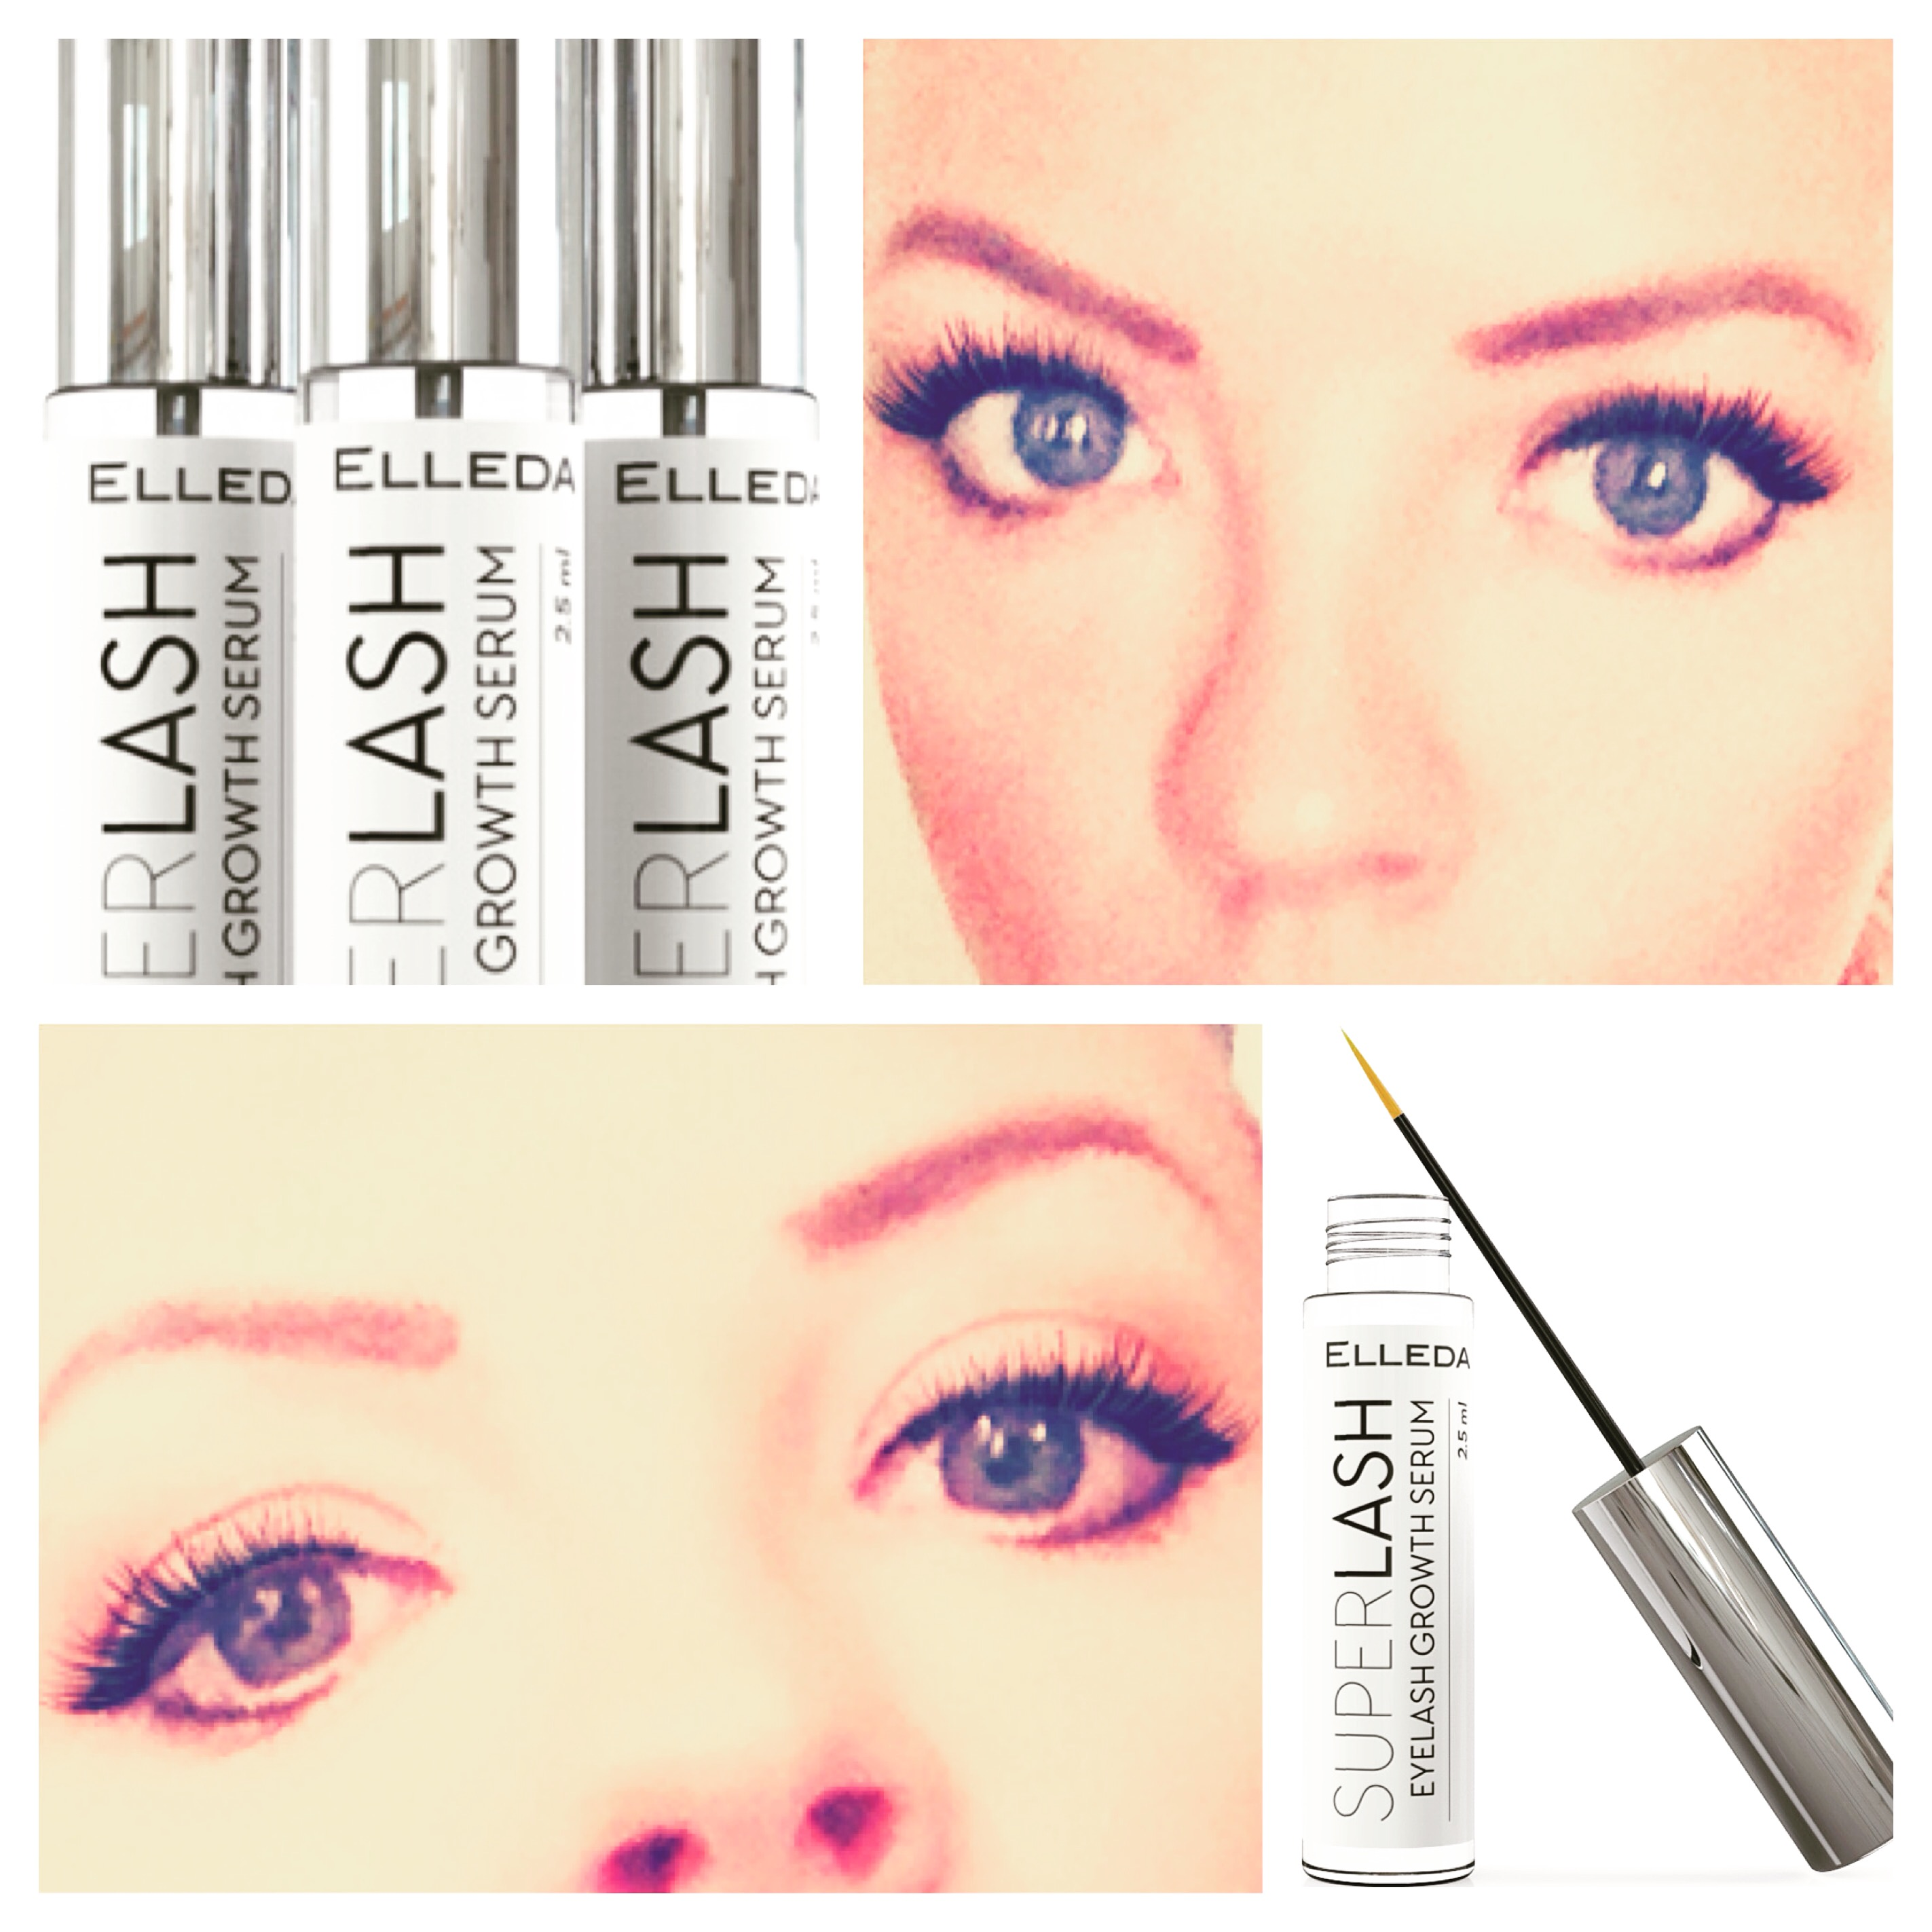 SUPERlash eyelash serum review